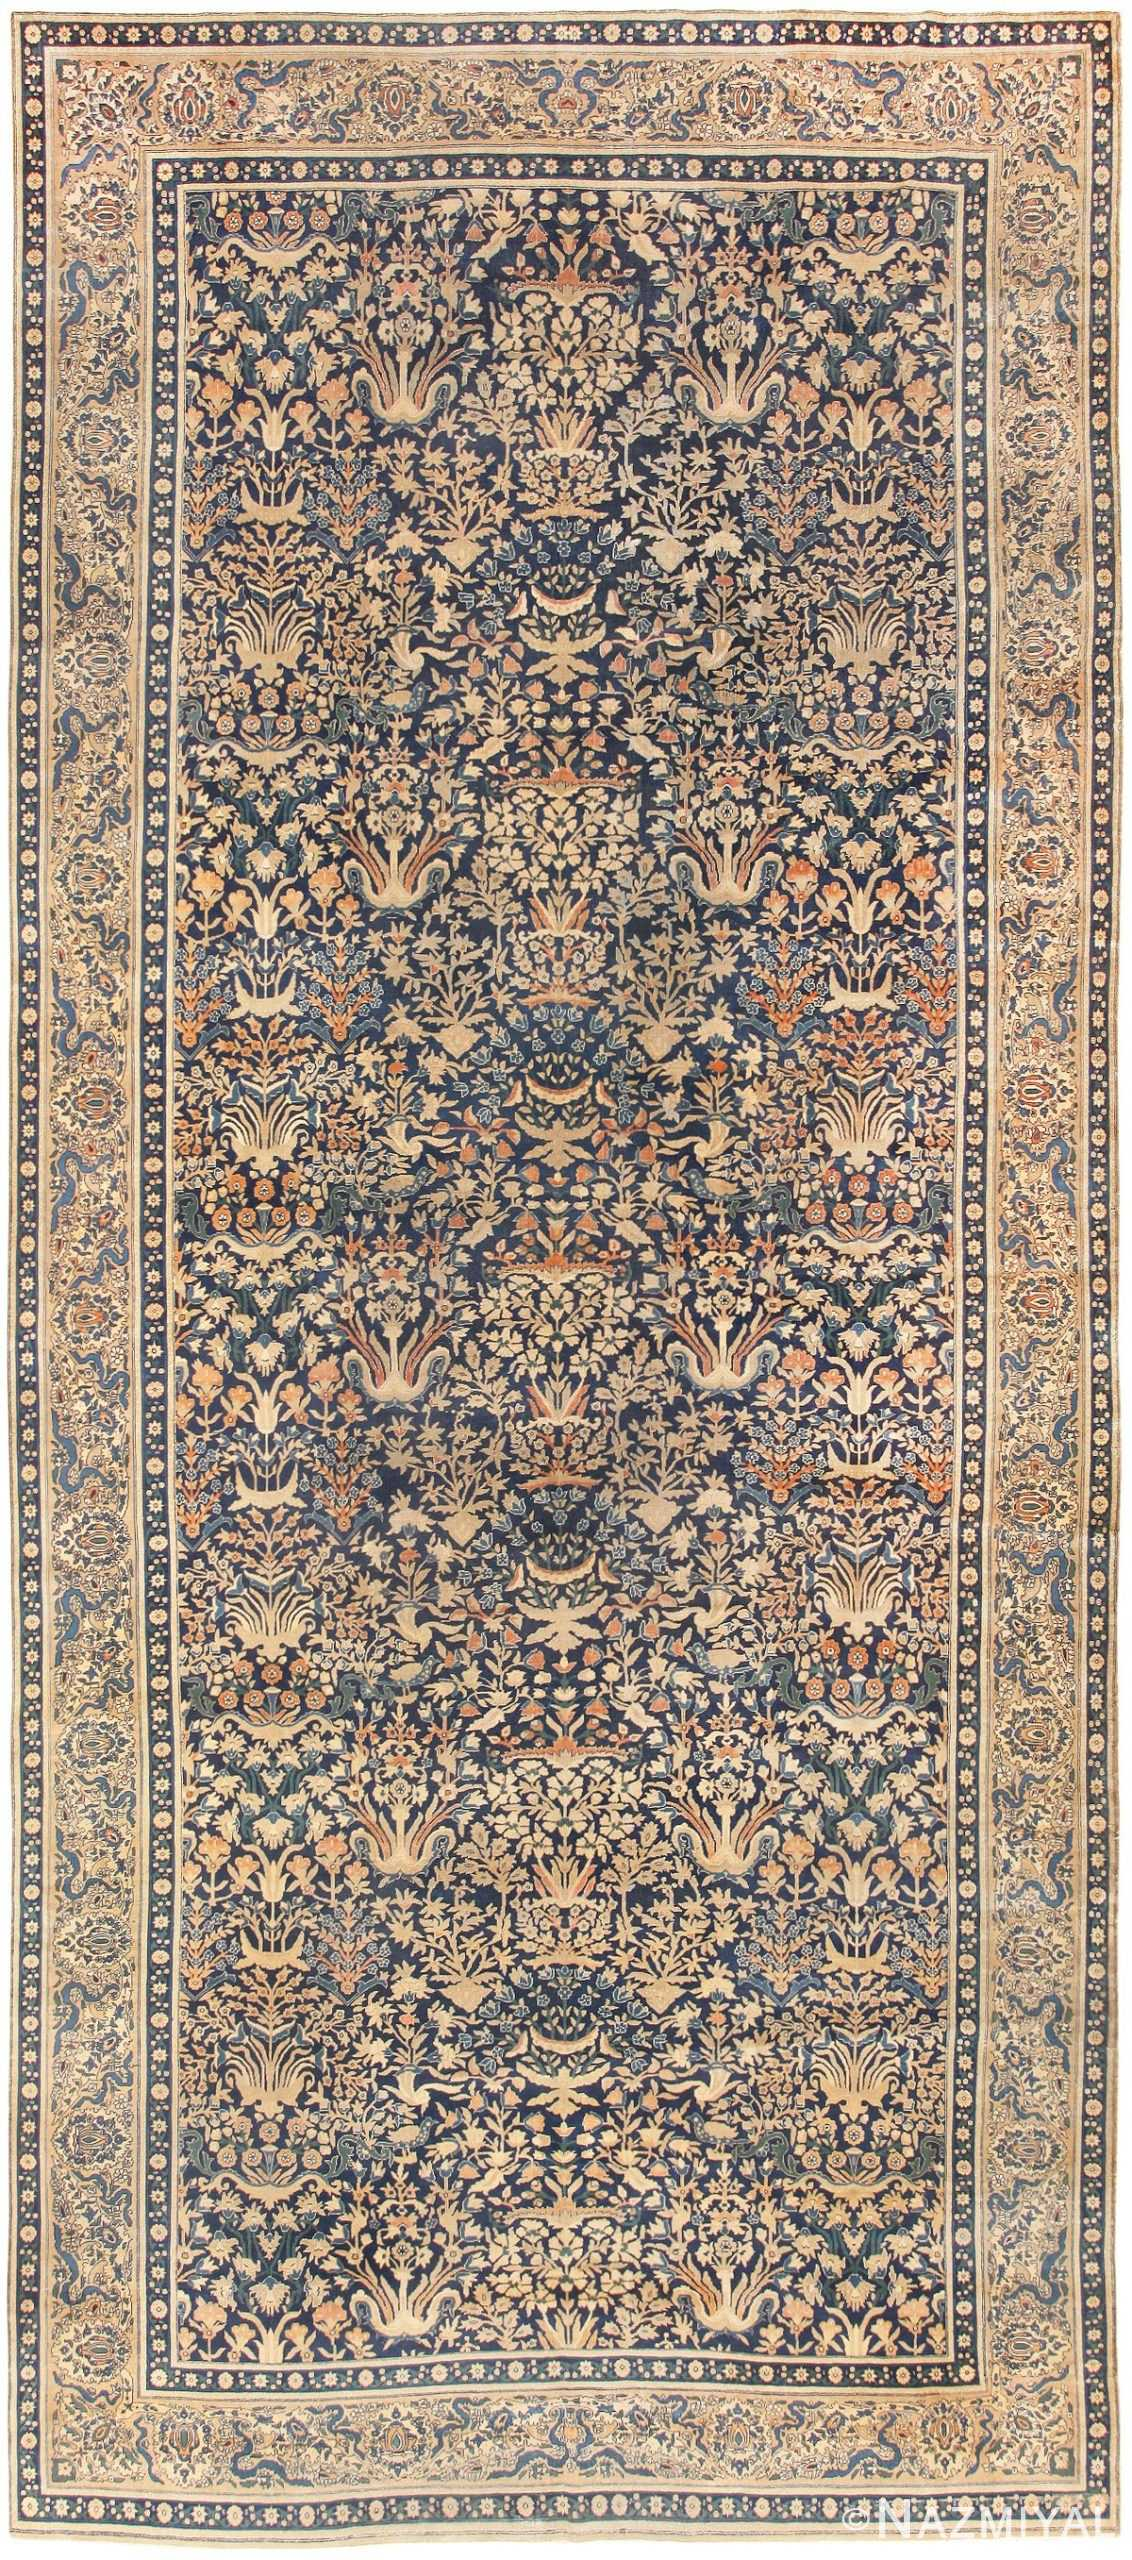 Antique Indian Agra Rug 40572 Detail/Large View